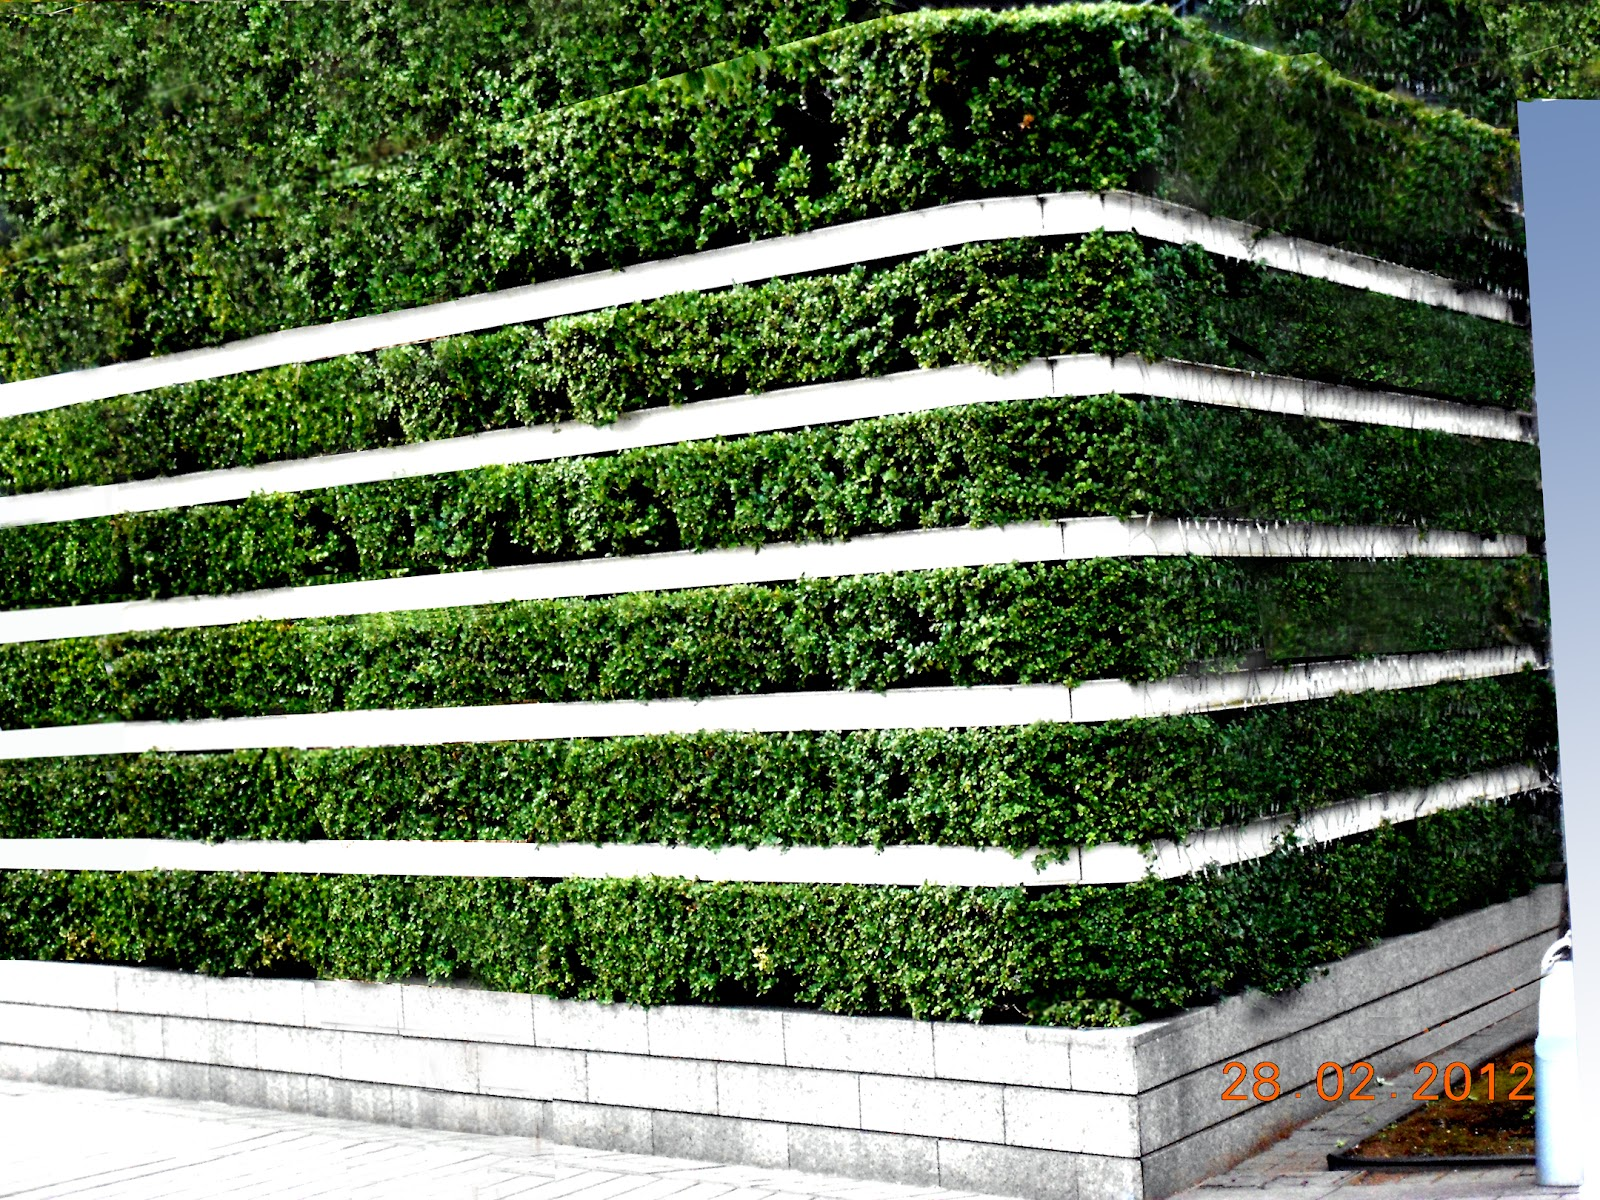 agro wall vertical garden planting system agro wall vertical garden for interior and exterior. Black Bedroom Furniture Sets. Home Design Ideas